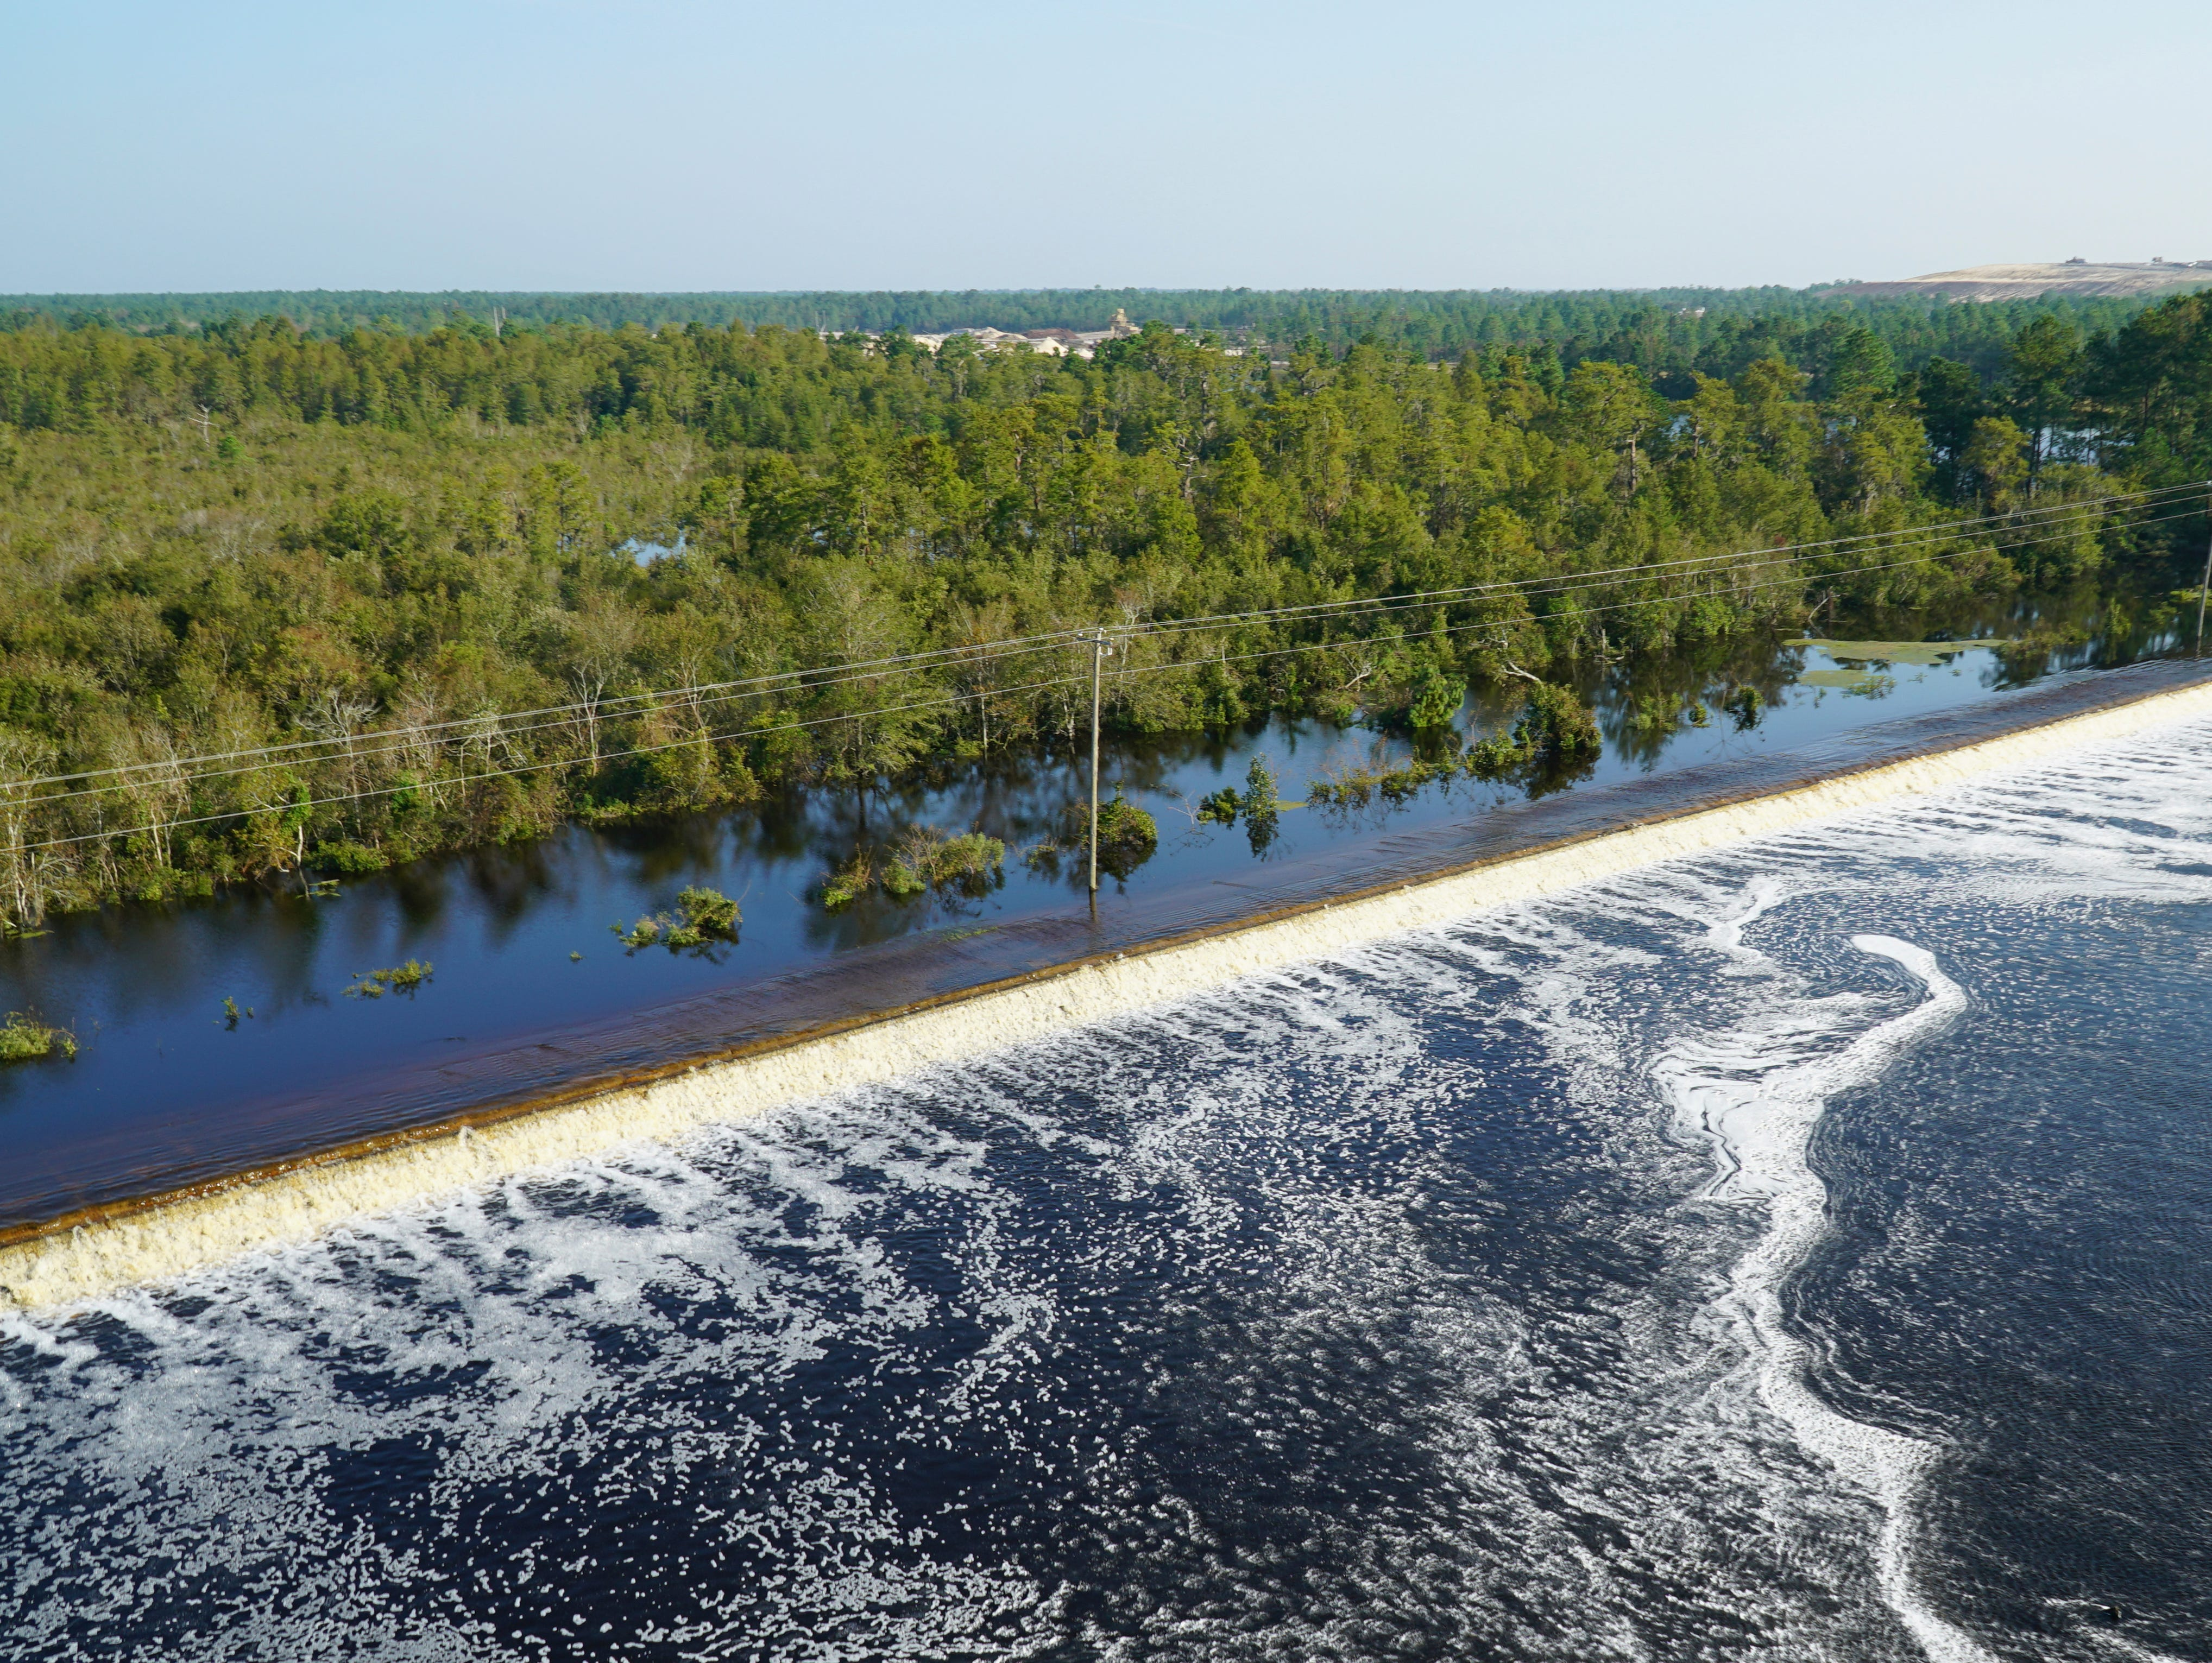 In this drone photo released by Duke Energy, flooding from the swollen Cape Fear River overtops an earthen dike at Sutton Lake, a 1,100-acre lake at the L.V. Sutton Power Station near Wilmington, N.C. , on Sept. 20, 2018. Duke Energy activated a high-level emergency alert at the retired coal-fired power plant due to the flooding, raising concerns of a potential breach.